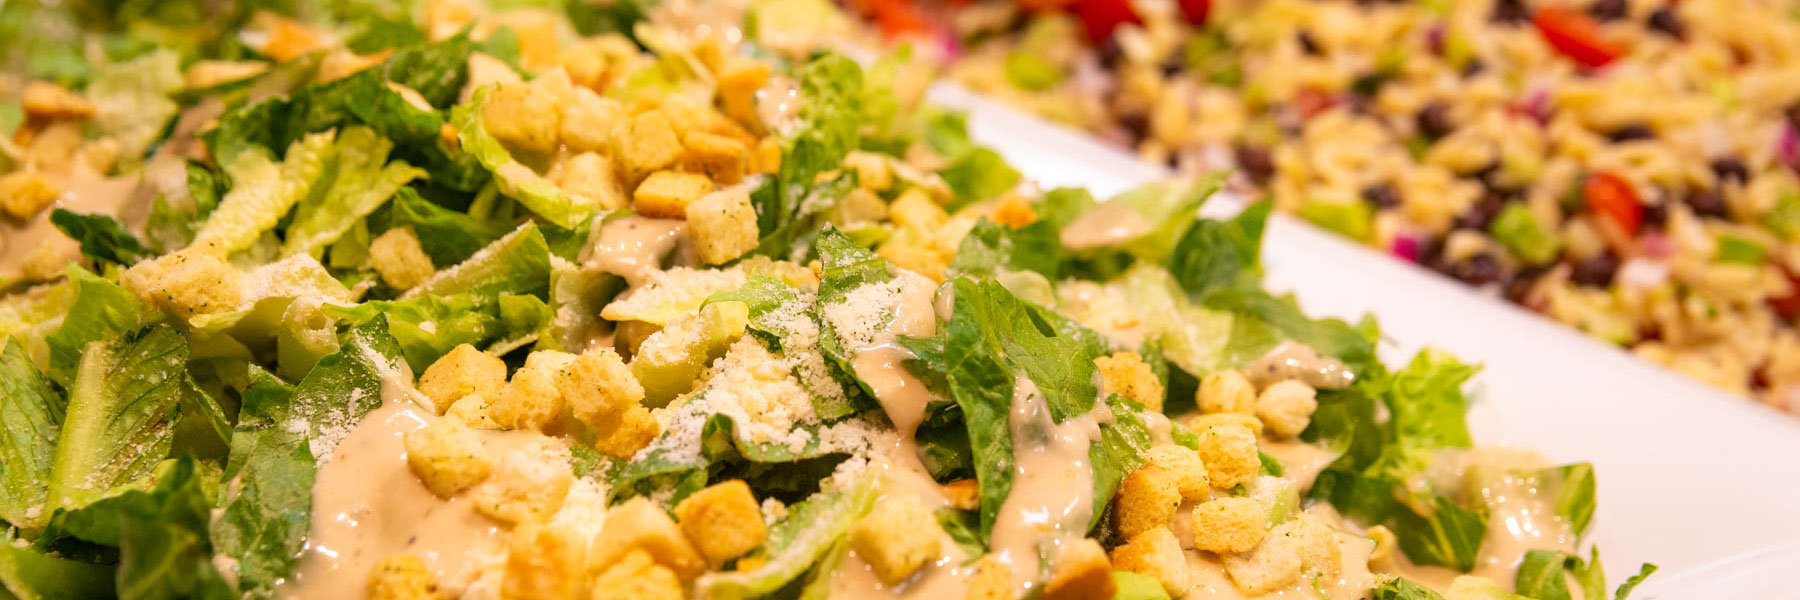 close up photo showing a lettuce salad with croutons and dressing